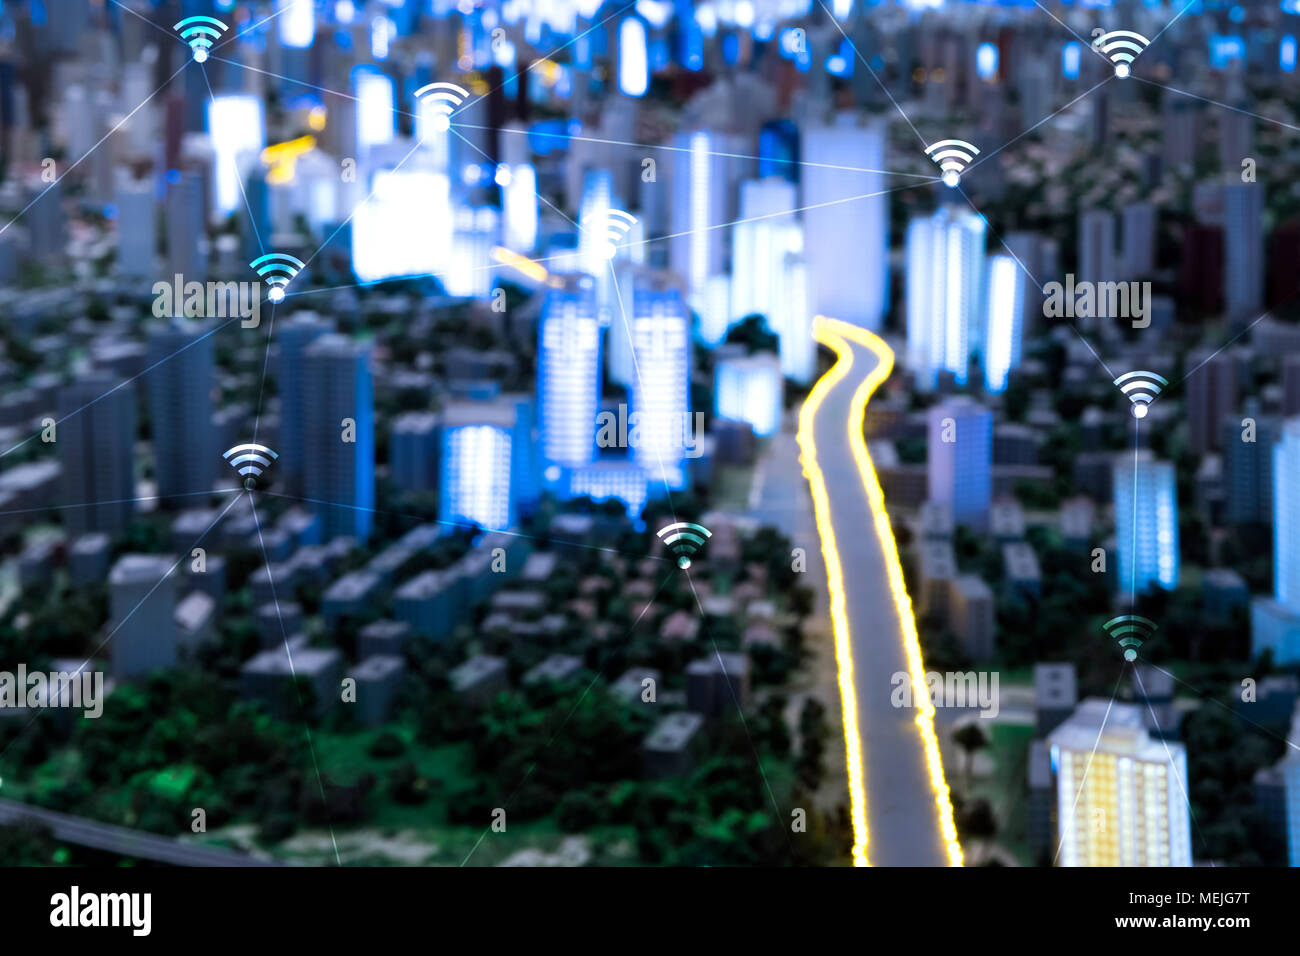 Smart city , power grids electric Energy Distribution chain industry , internet of things (iot) and long range wifi technology concept. - Stock Image